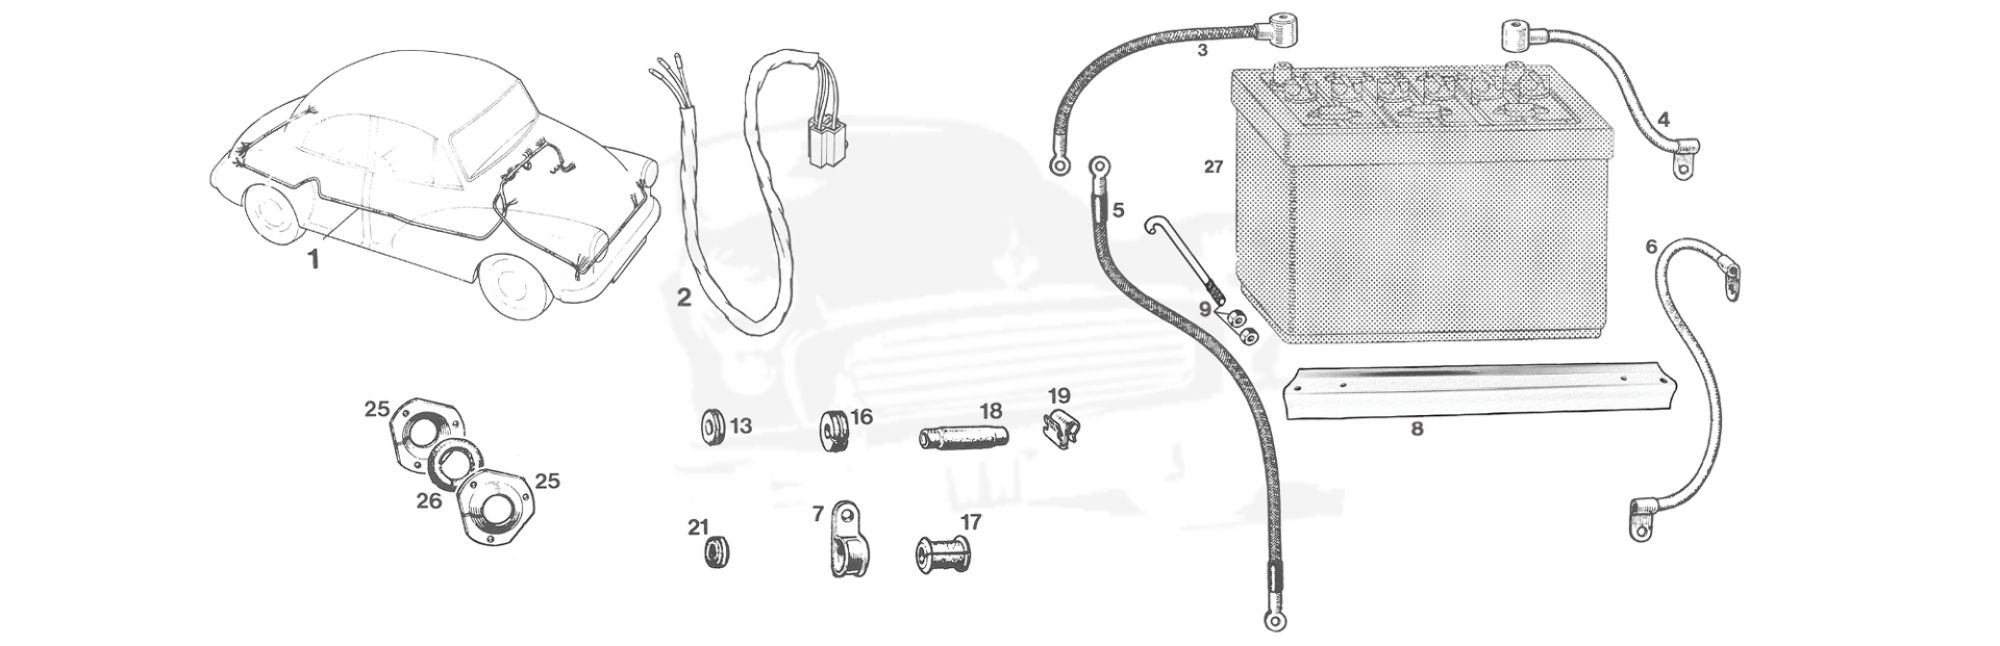 hight resolution of wiring harness battery